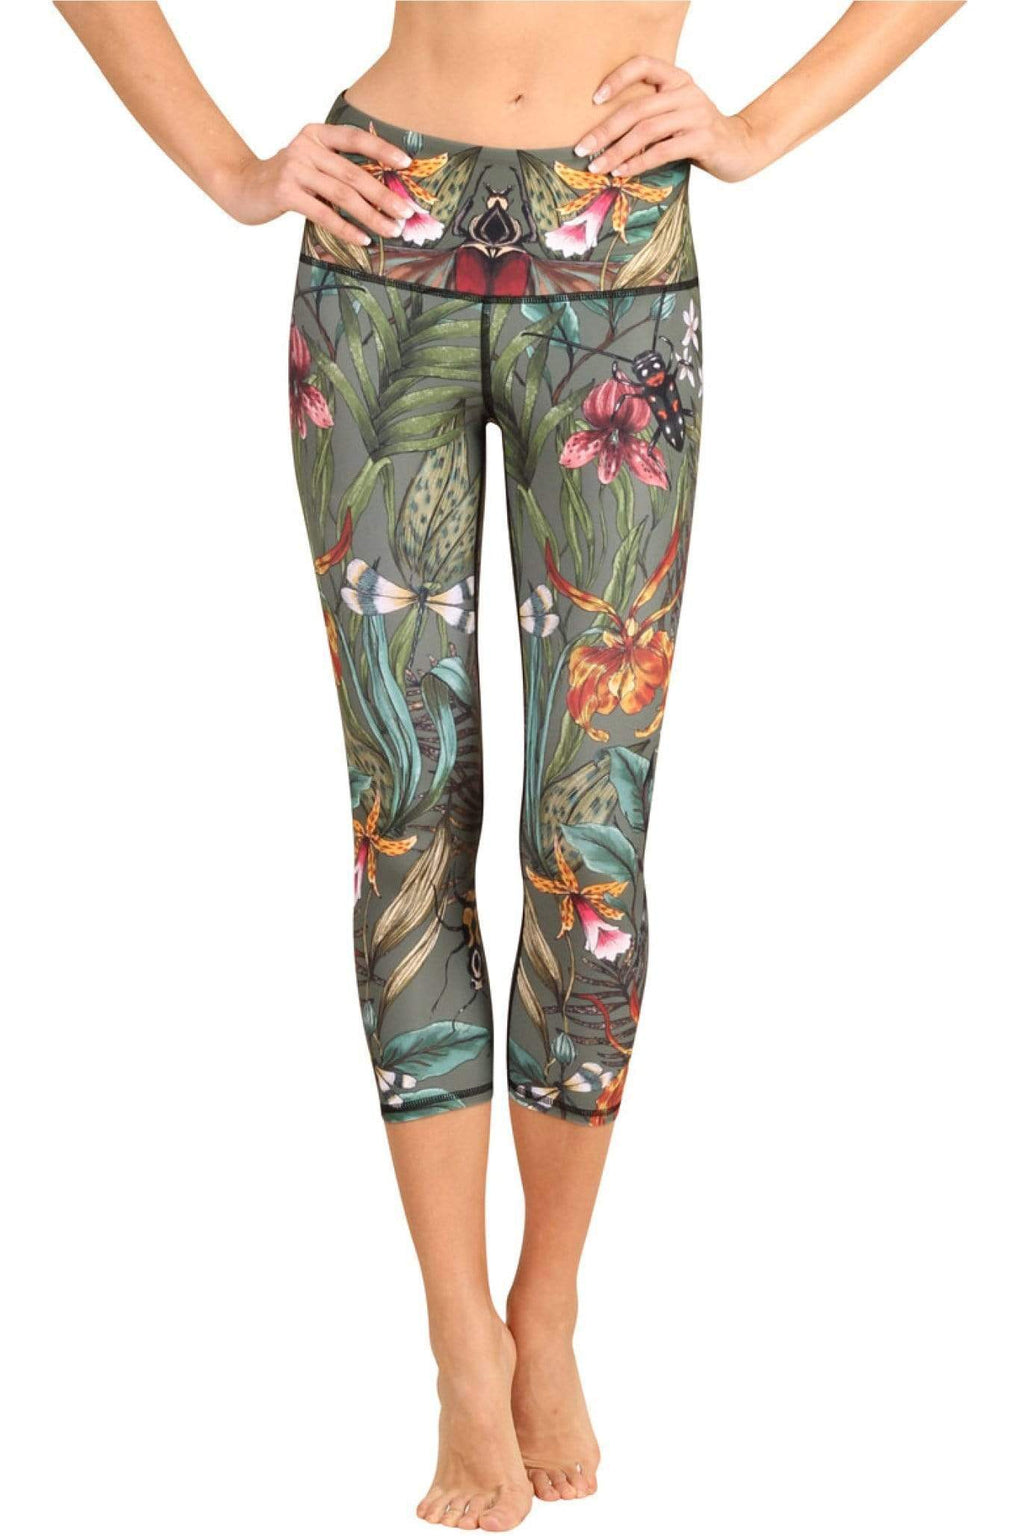 Yoga Democracy Leggings Green Thumb Printed Yoga Crops